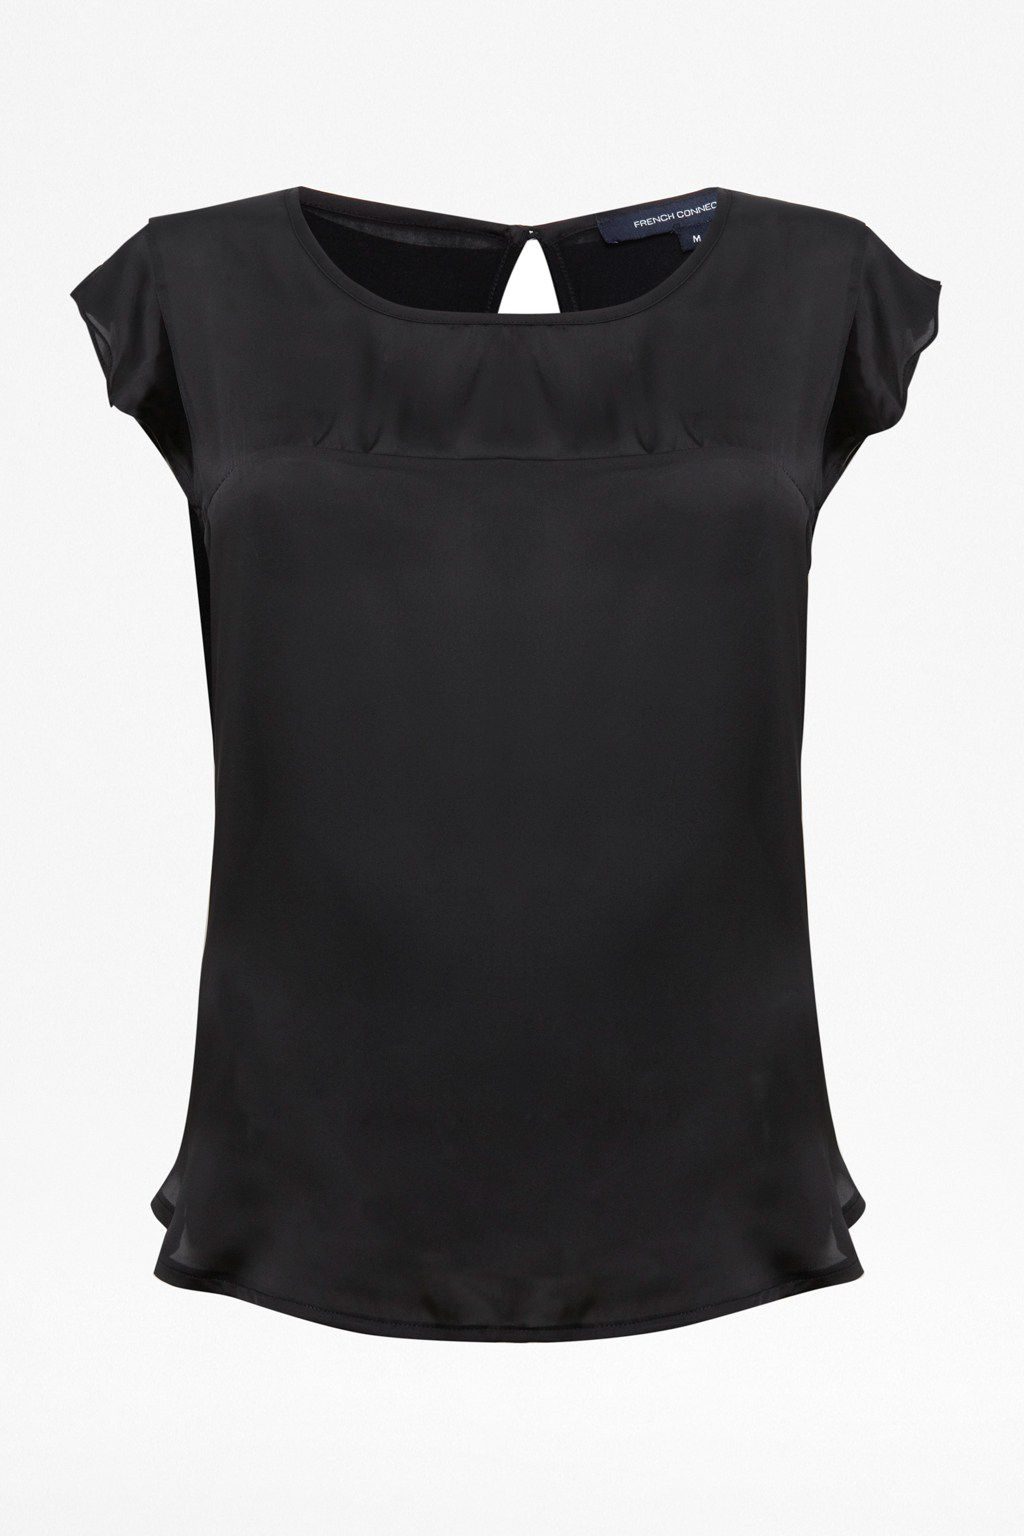 Polly plains satin pleated sleeve top